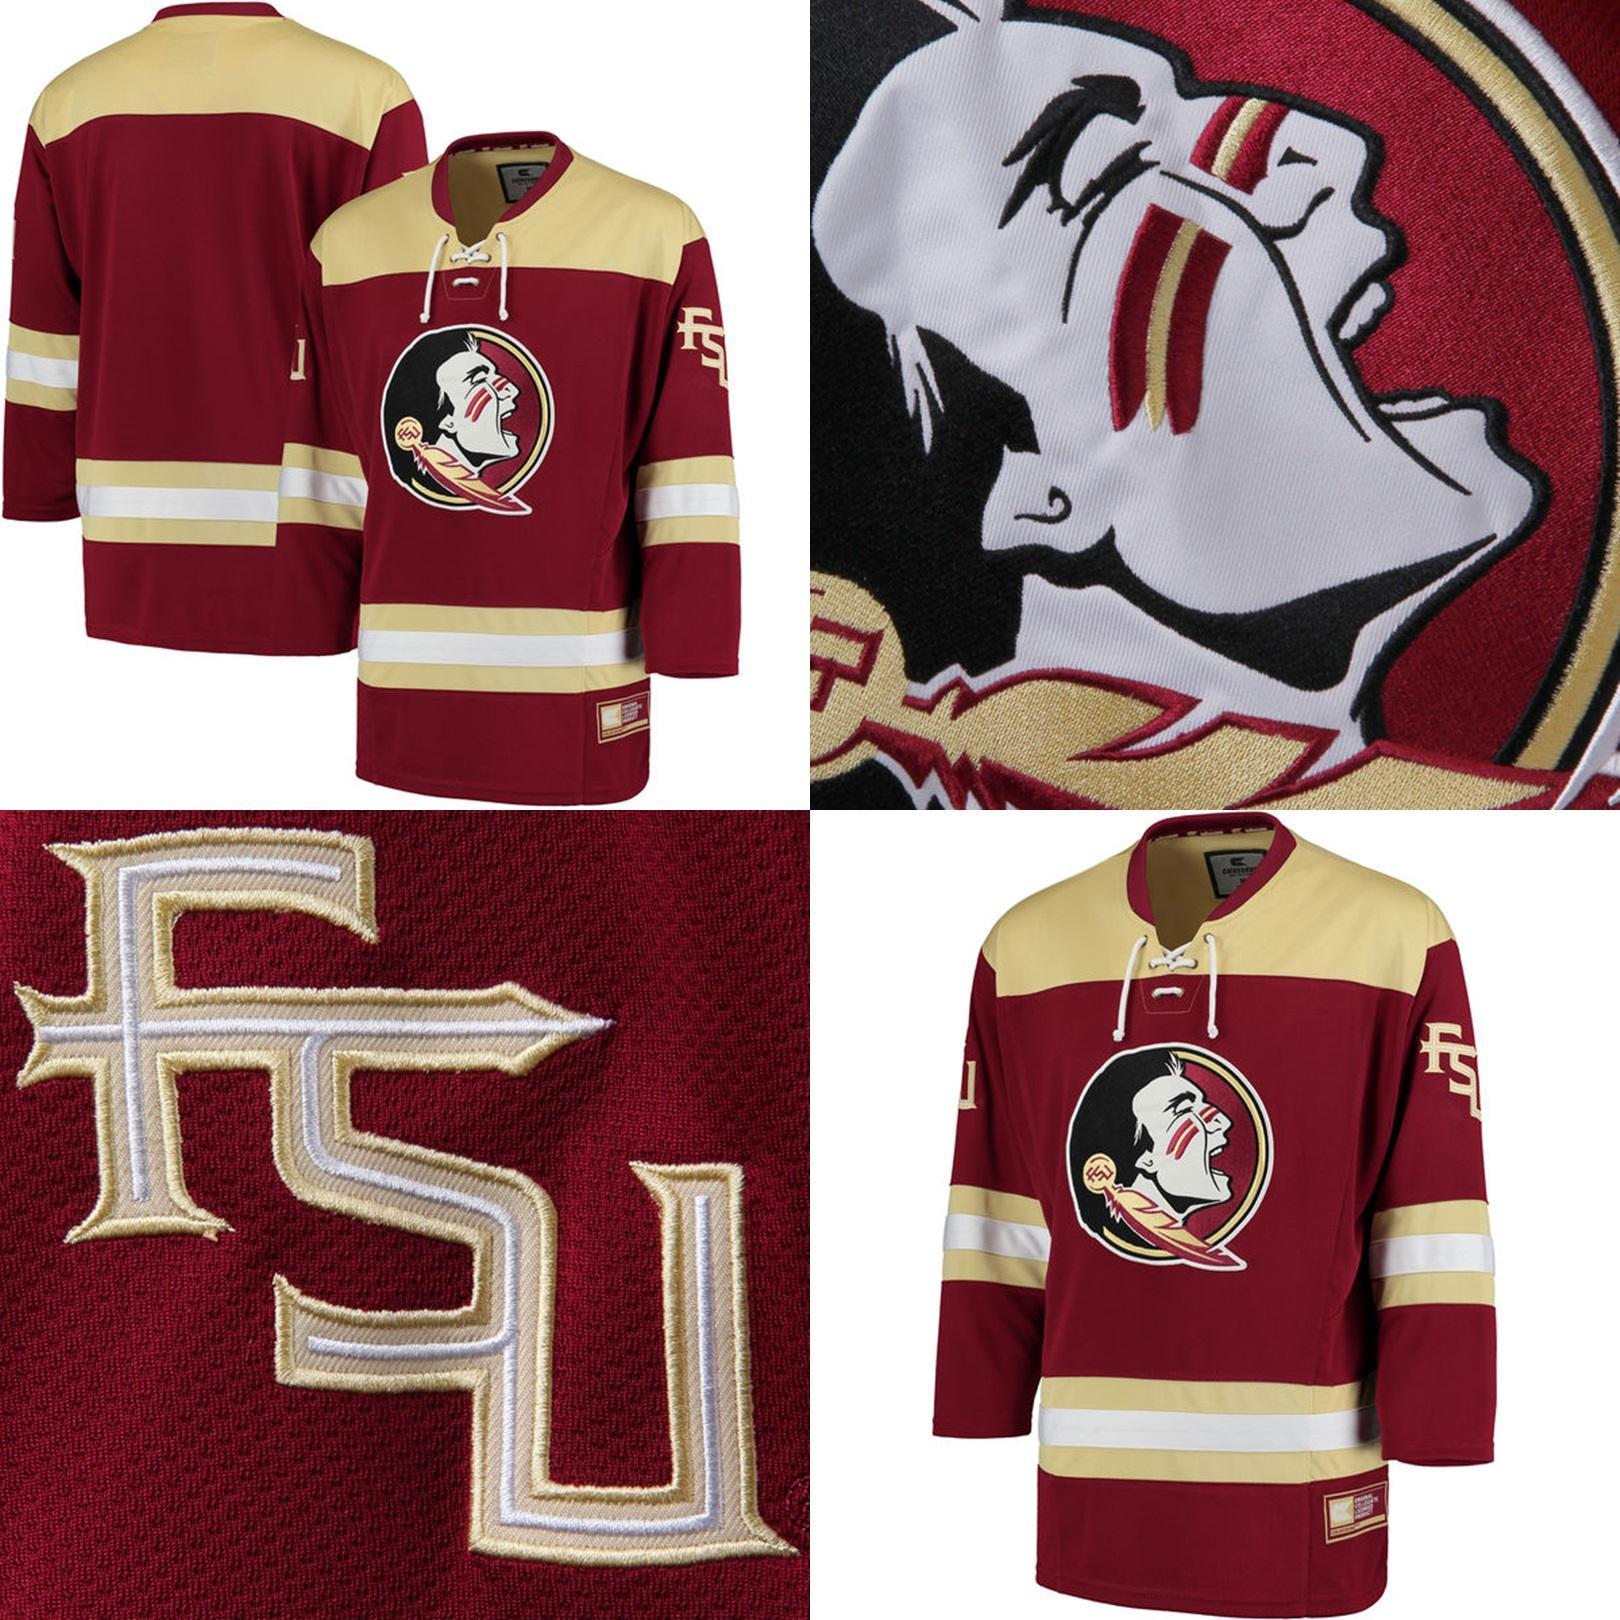 2019 Customize NCAA Florida State Seminoles College Jersey Mens Womens Kids  Custom Any Name Any NO.Best Quality Cheap Ice Hockey Jerseys S 6XL From ... 0a4ae06b60a